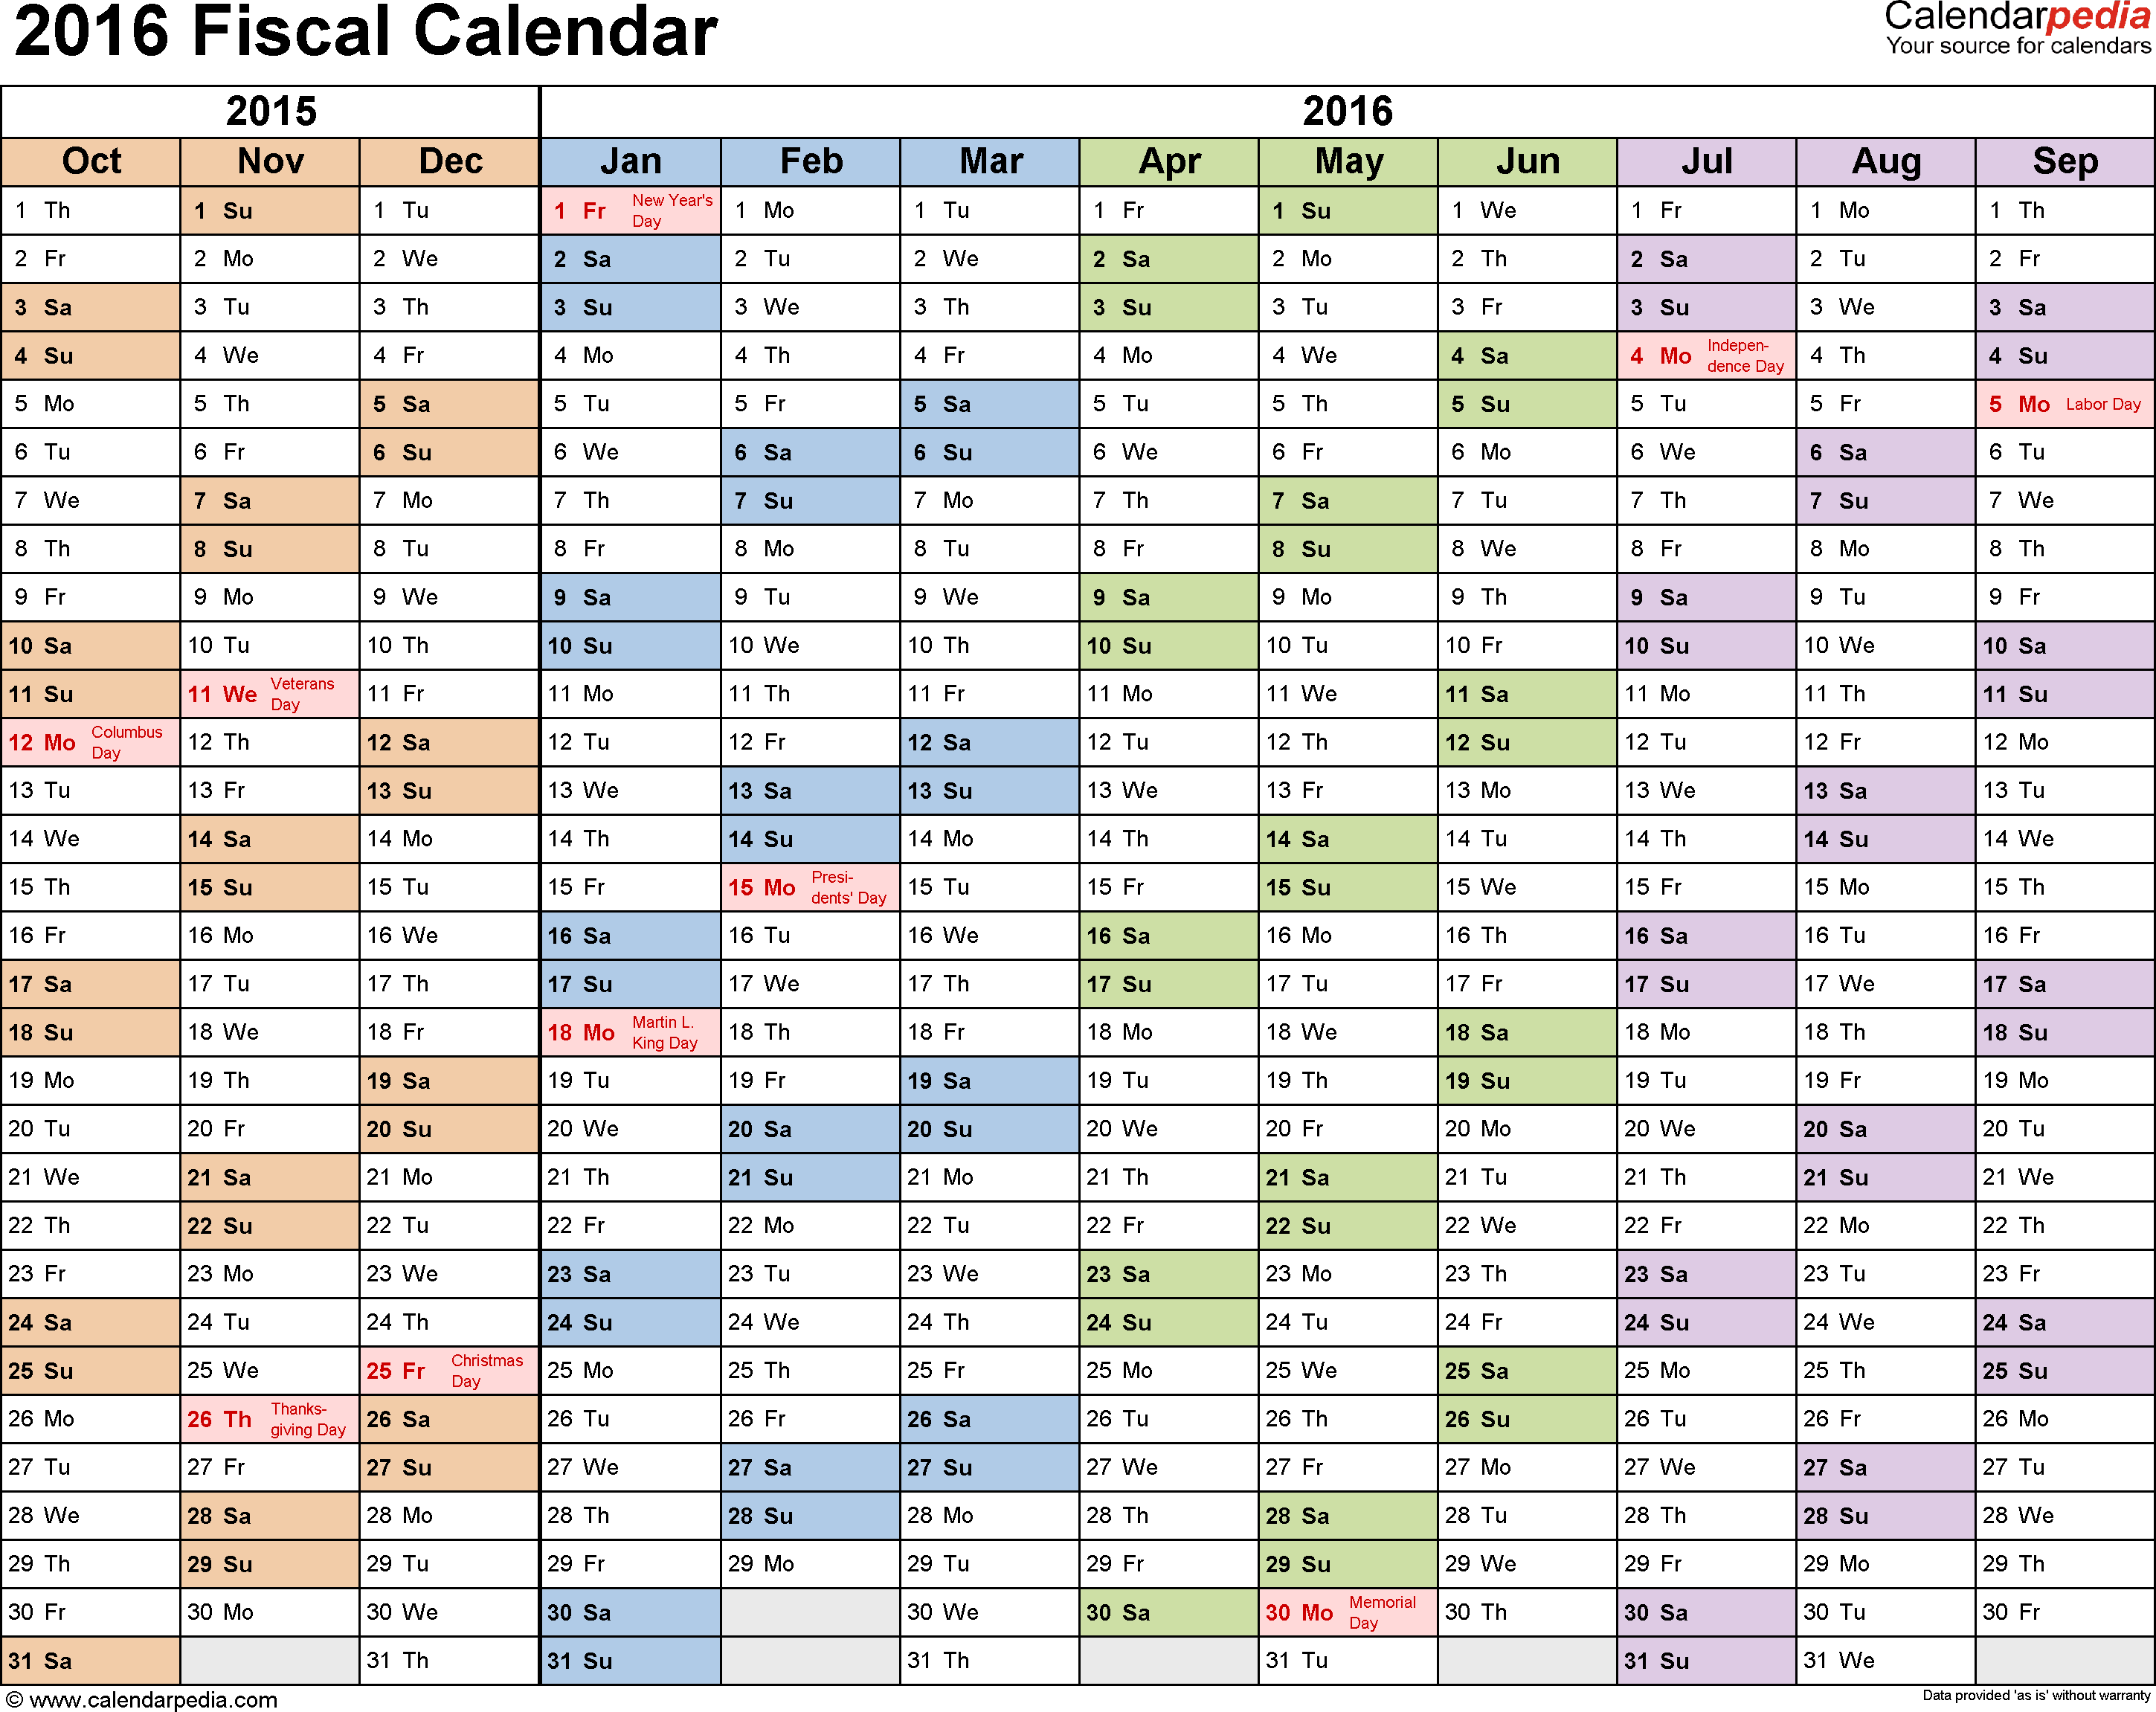 template 1 fiscal year calendar 2016 for excel landscape orientation months horizontally